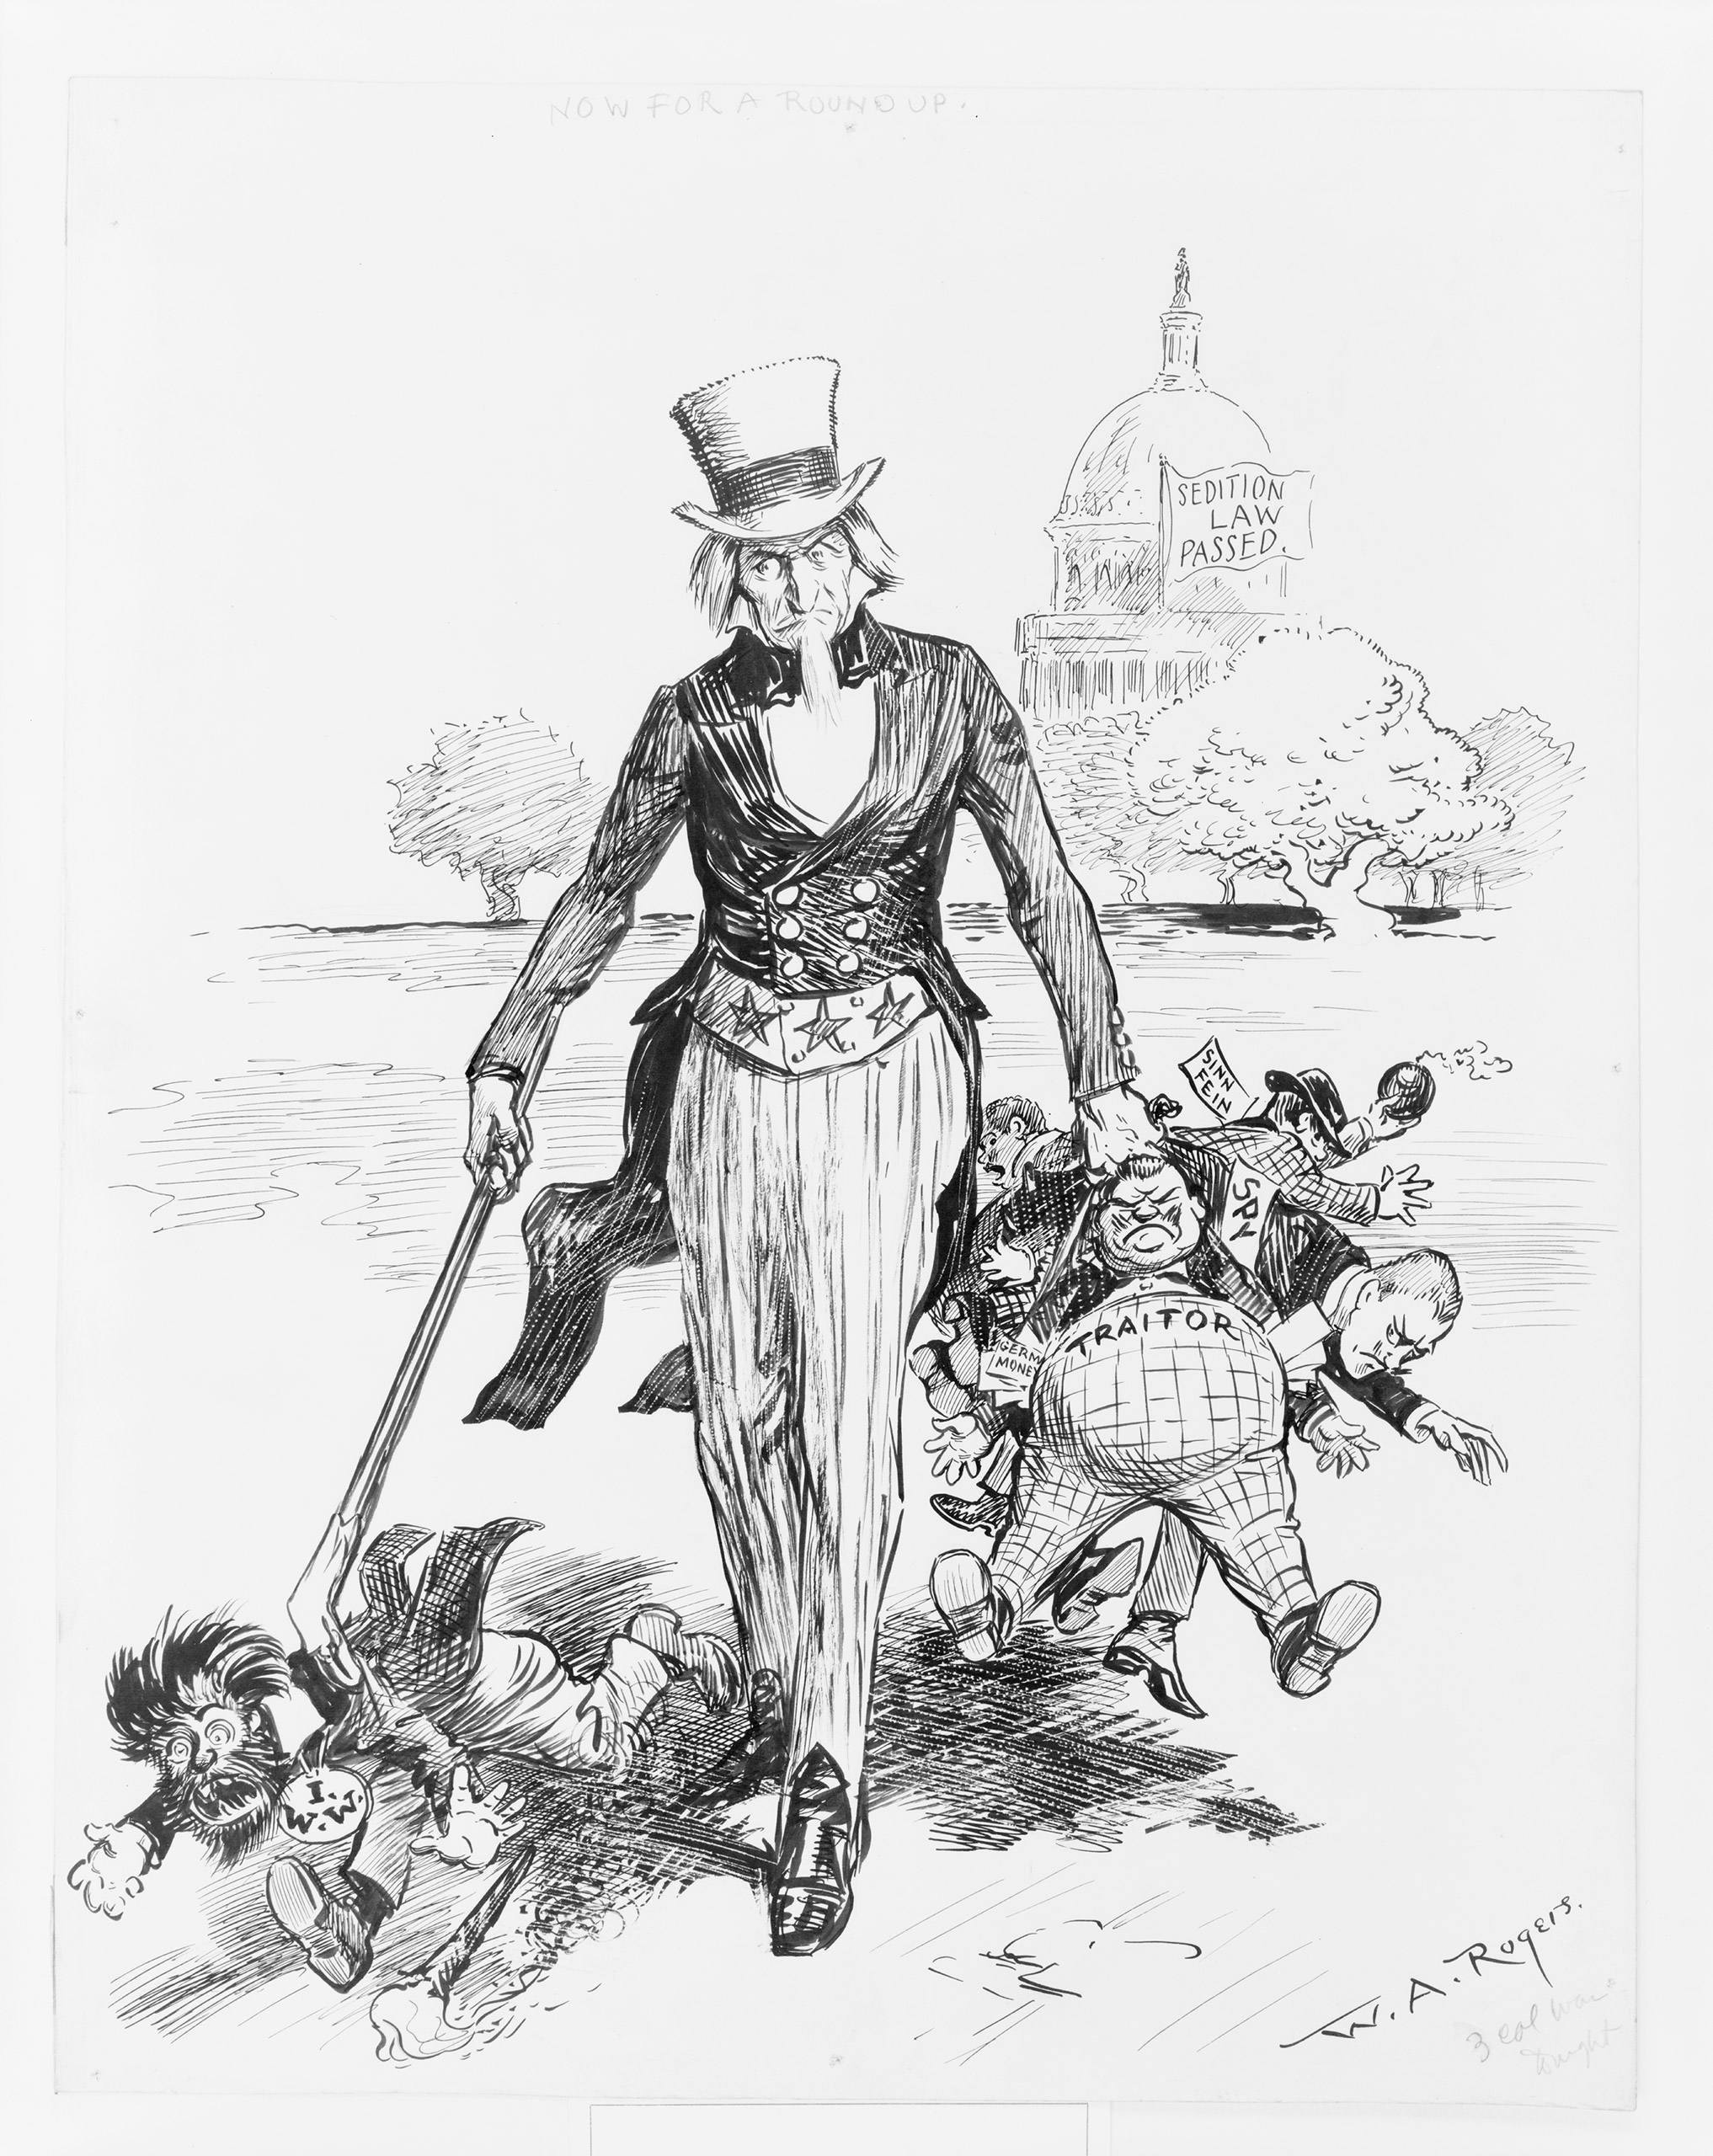 Cartoon by William Allen Rogers published by the New York Herald celebrating Uncle Sam's expanded authority.